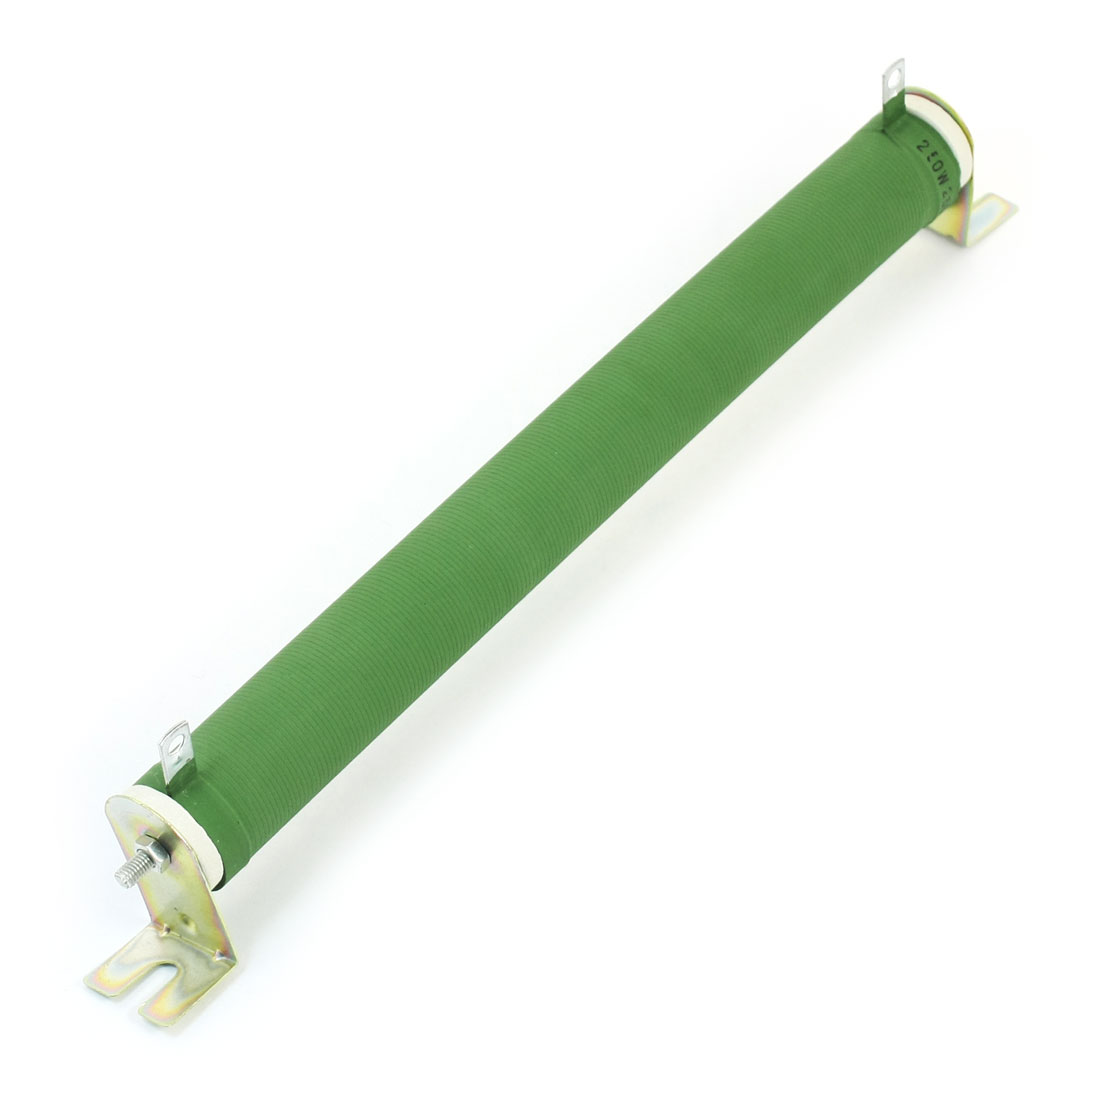 250W 250 Ohm Tubular Green Ceramic Tube Adjustable Variable Wirewound Power Rheostat Resistor